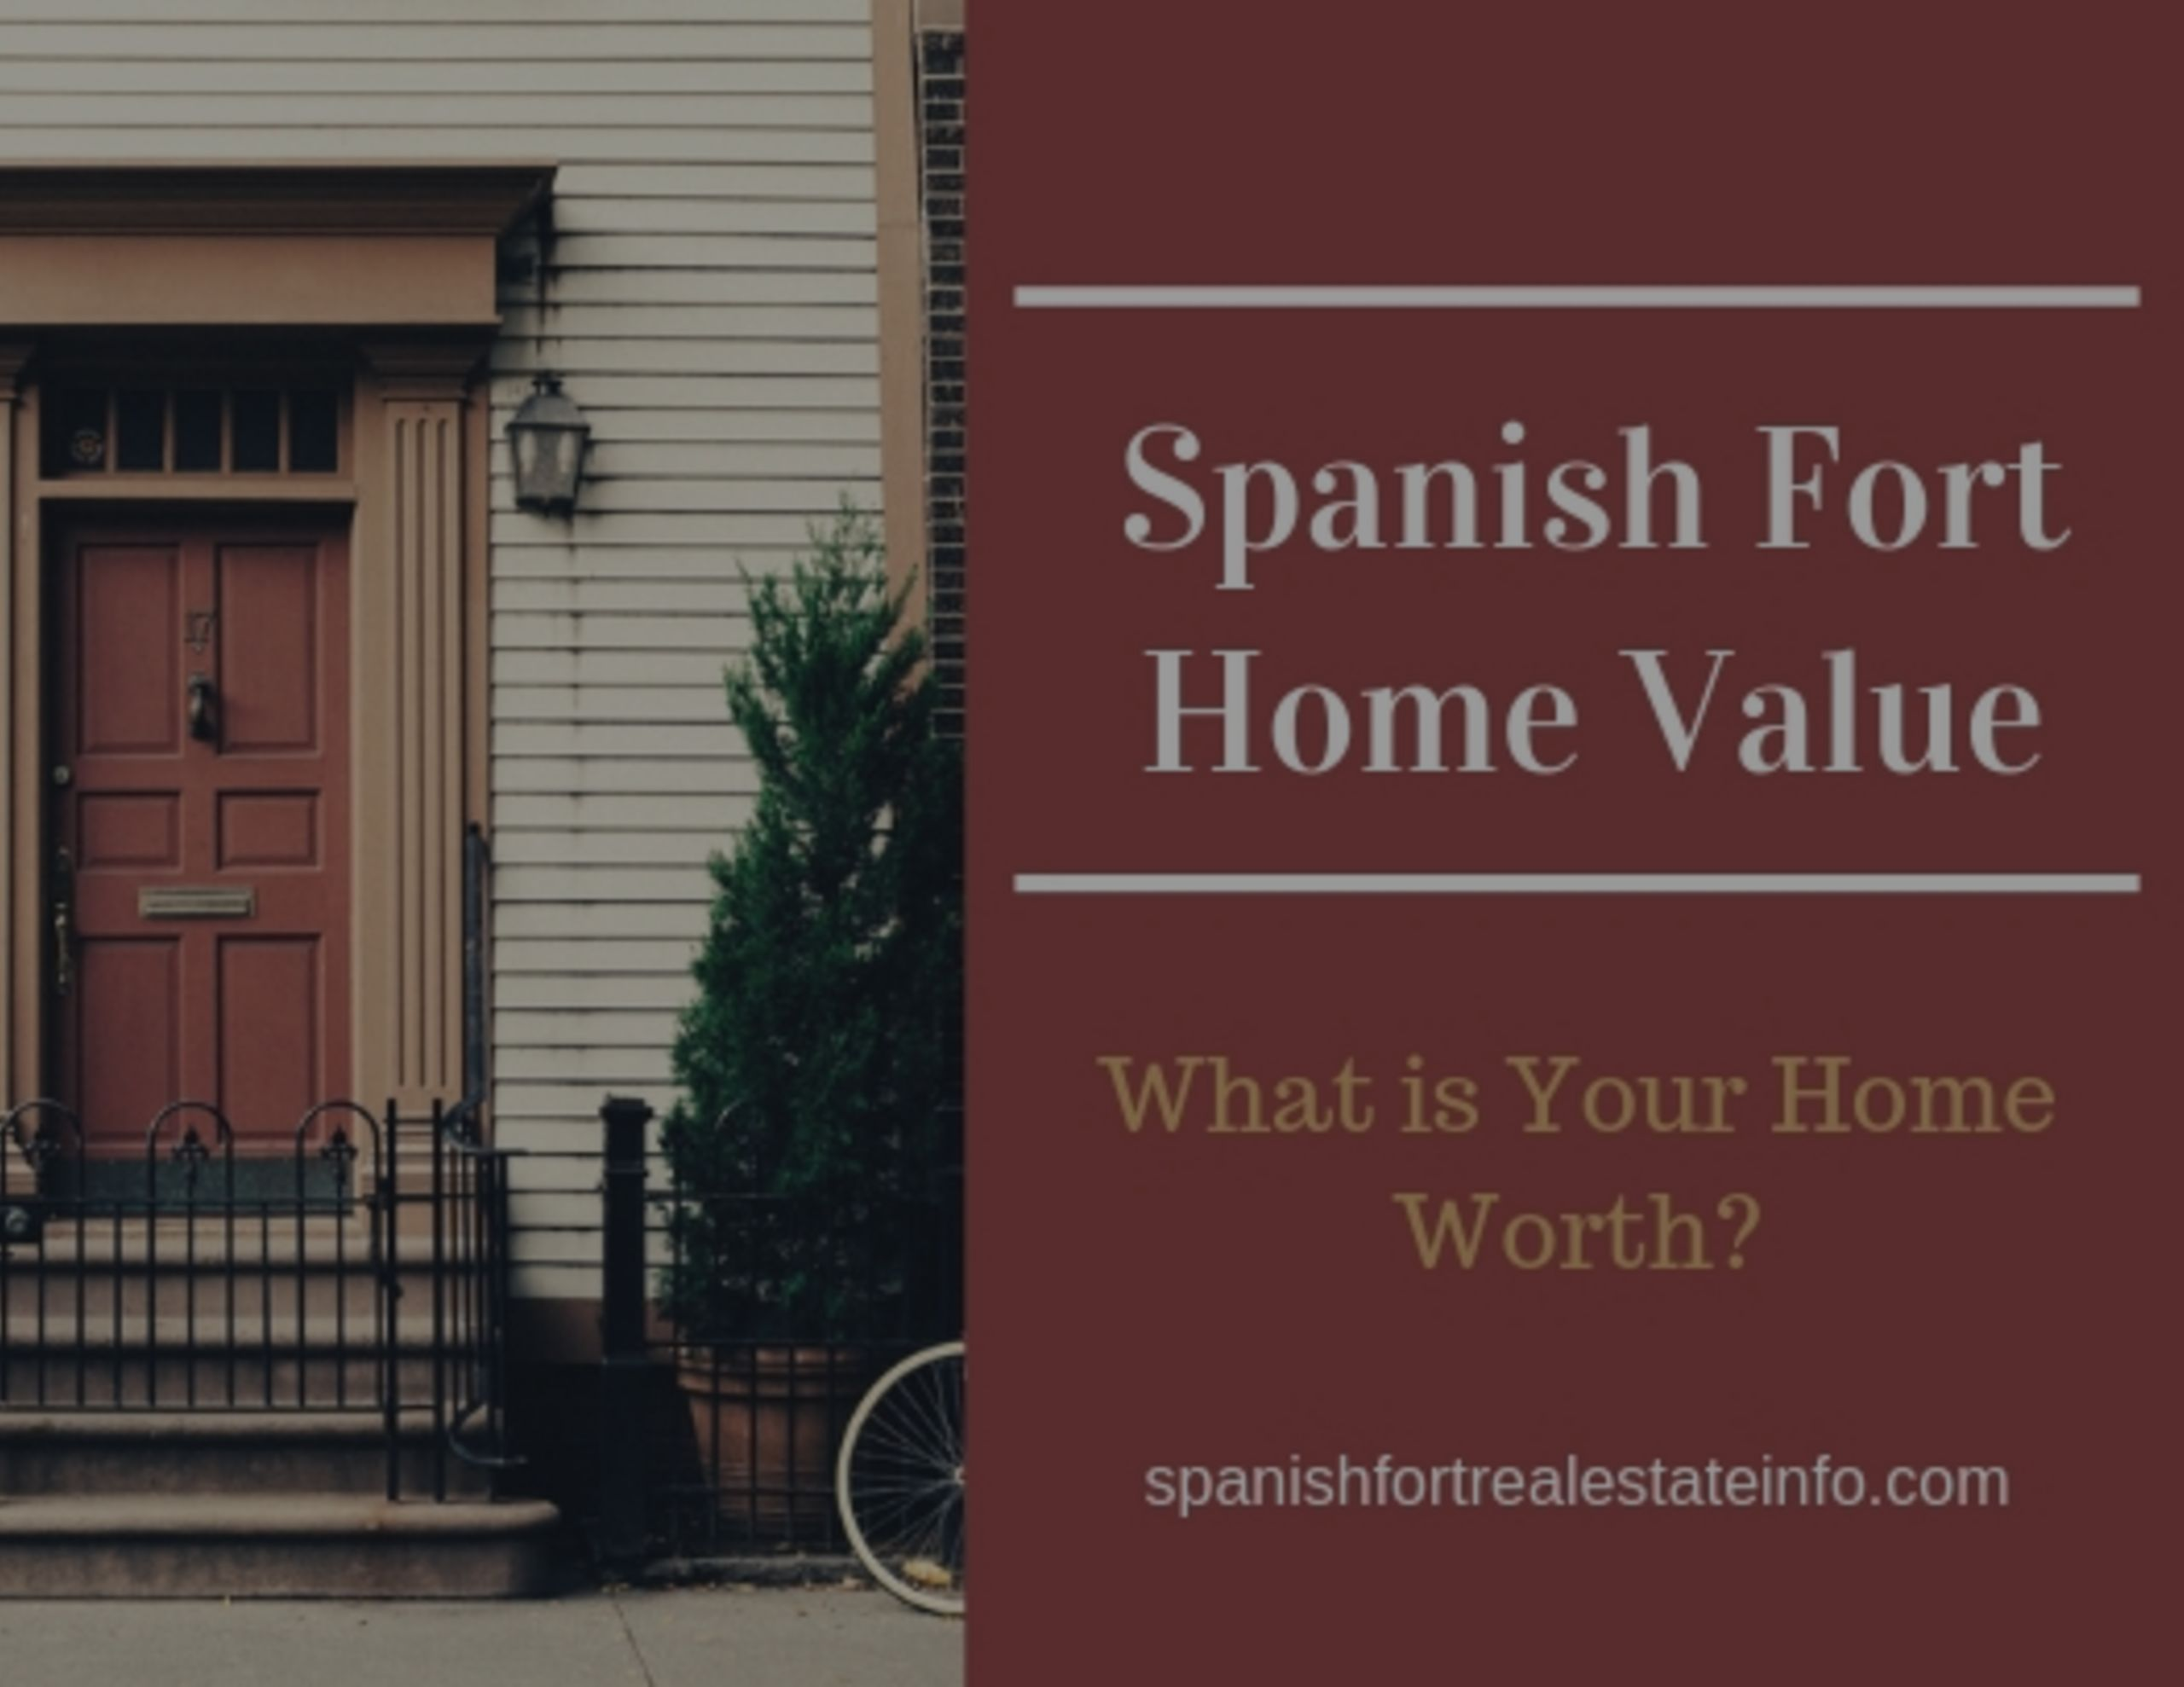 Spanish Fort Home Value